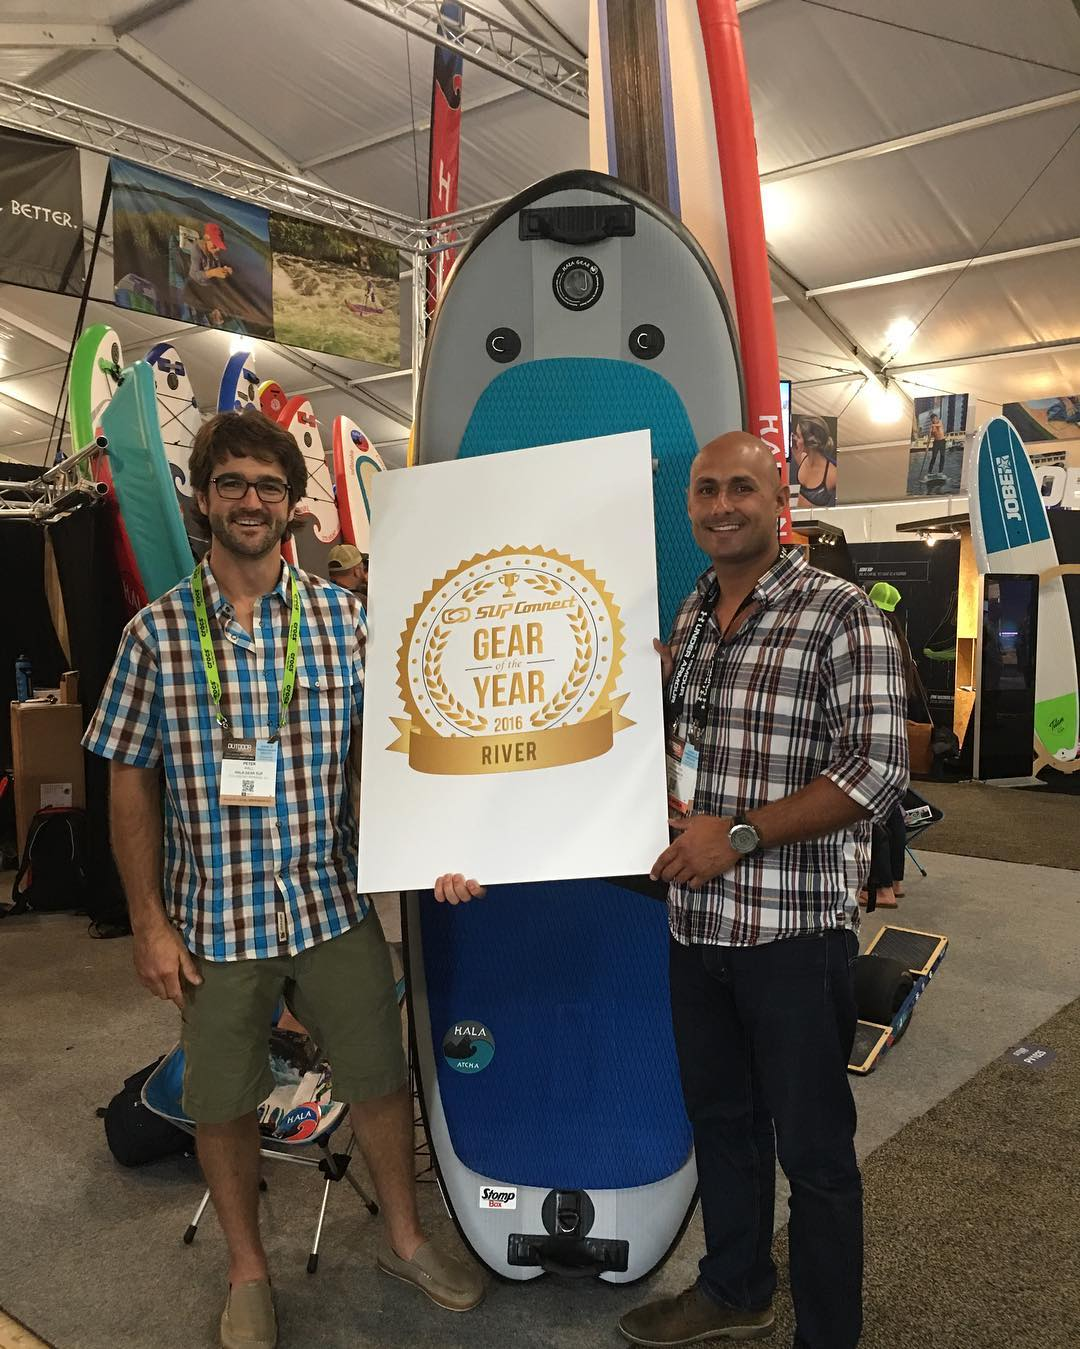 Stoked to win Supconnect Gear of the Year for the Hala Atcha!! Thanks everyone for voting!